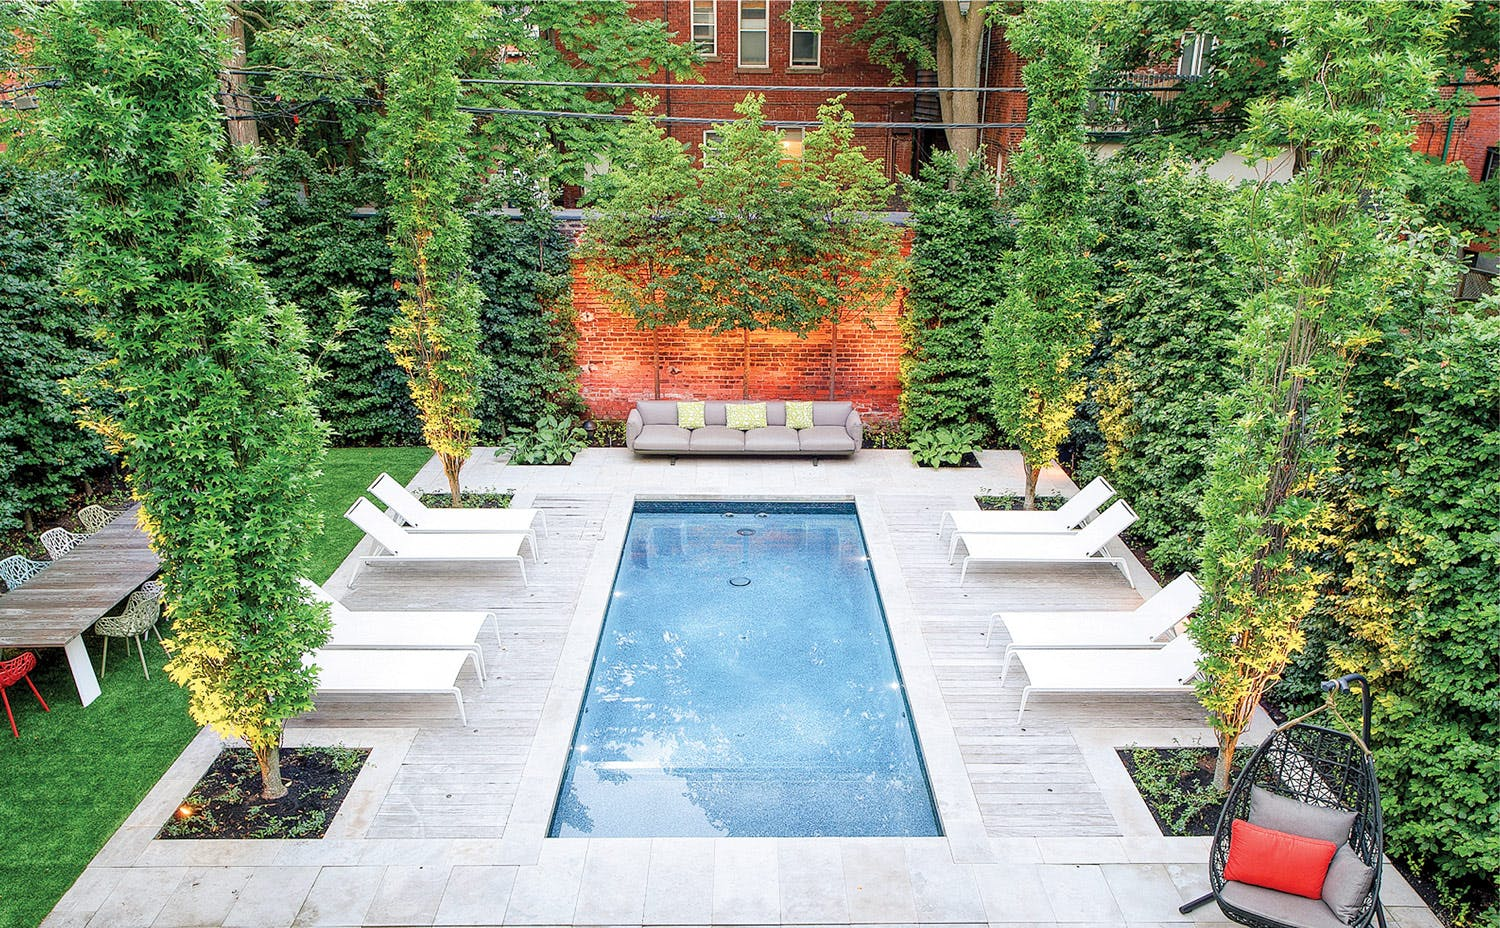 Backyard swimming pool surrounded by cedars